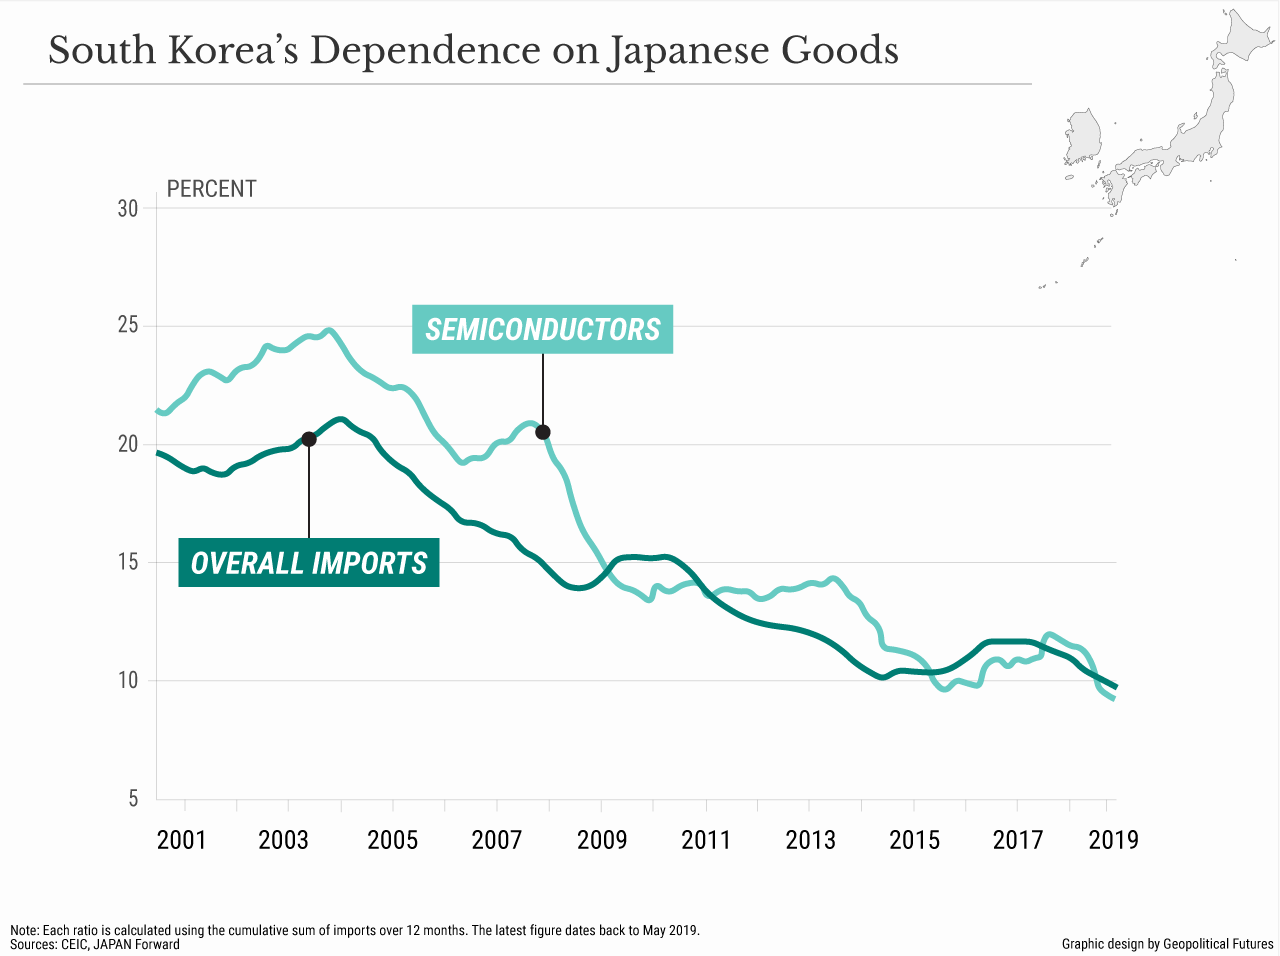 South Korea's Dependence on Japanese Goods